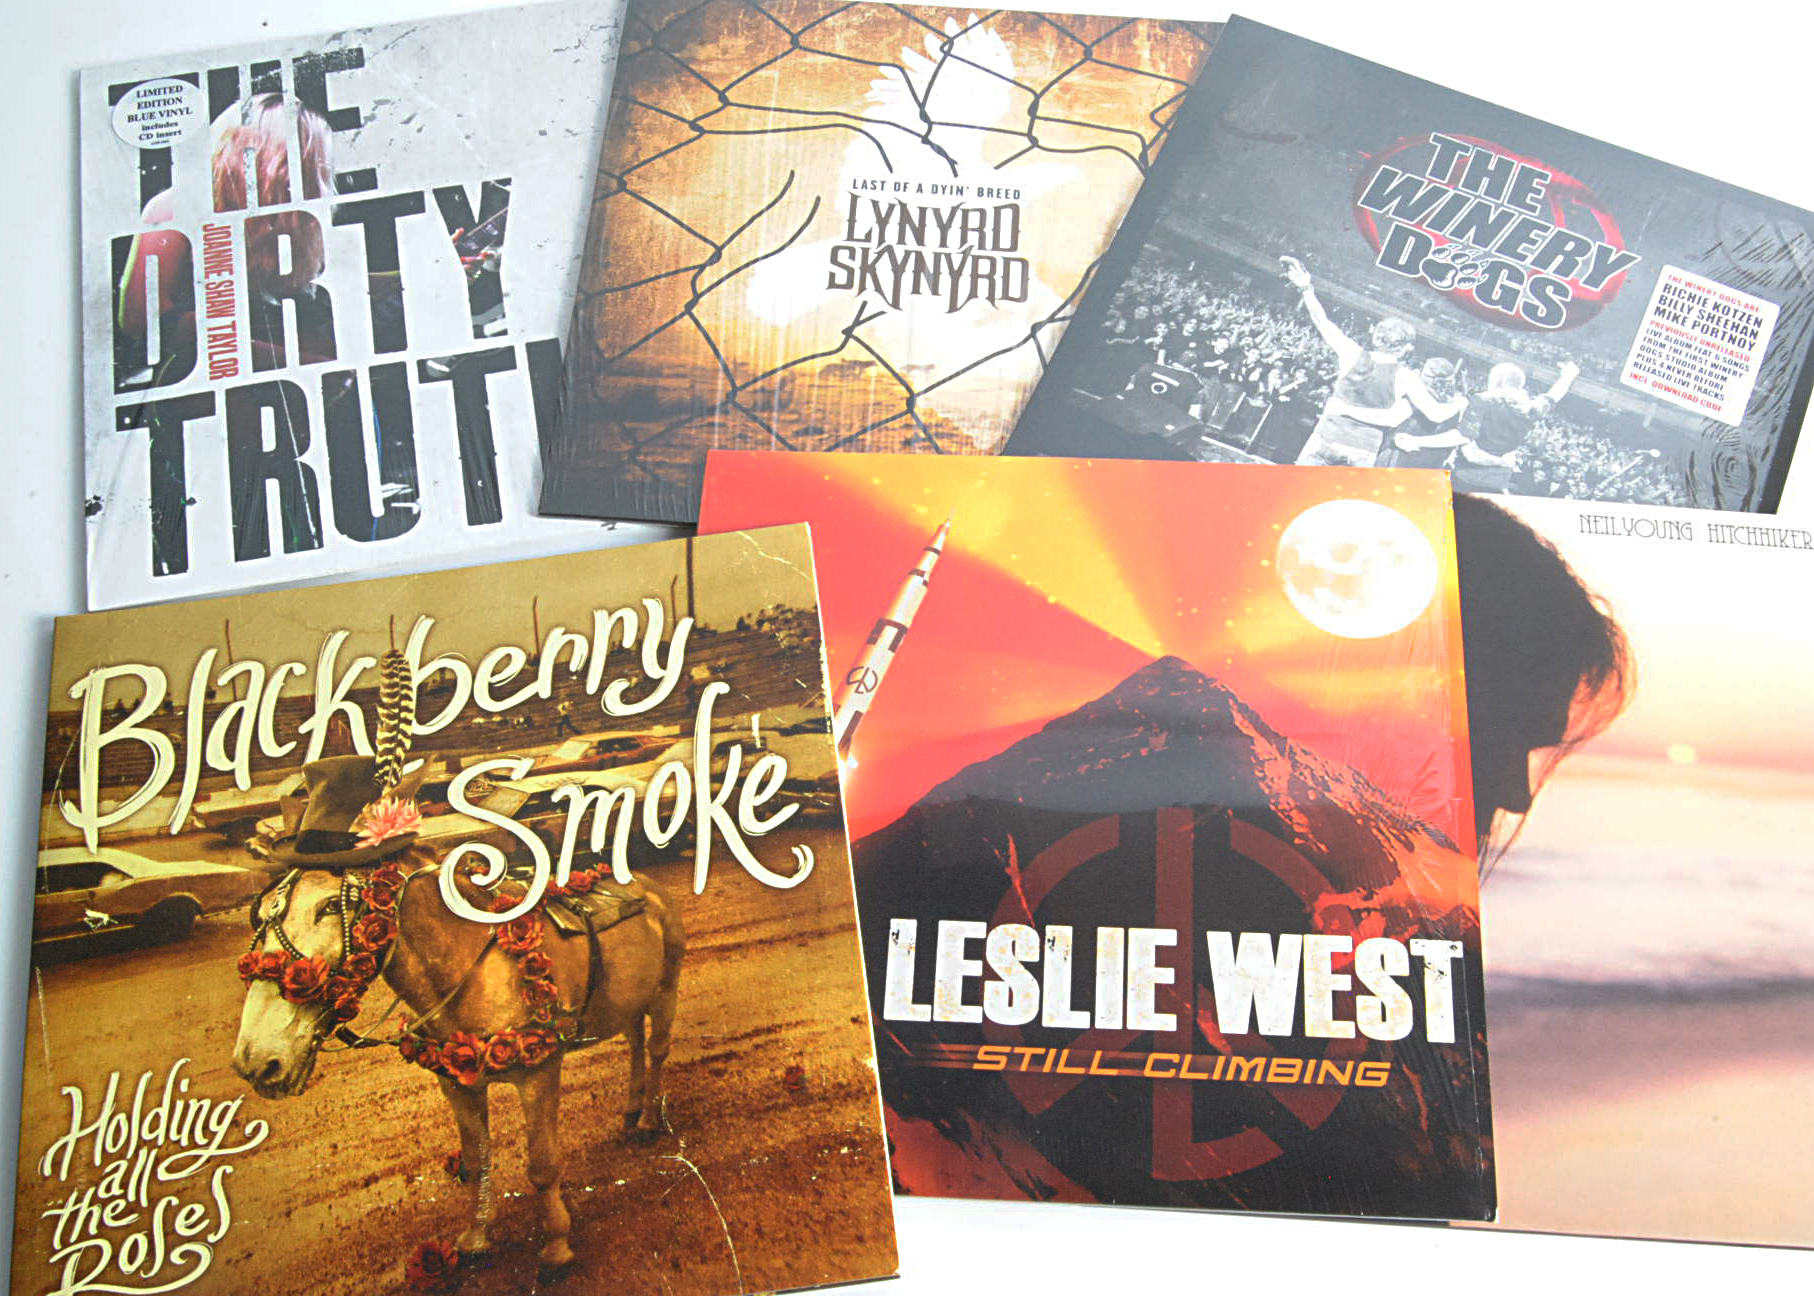 Classic Rock LPs, six more recent album releases of mainly Classic and Heavy Rock comprising The